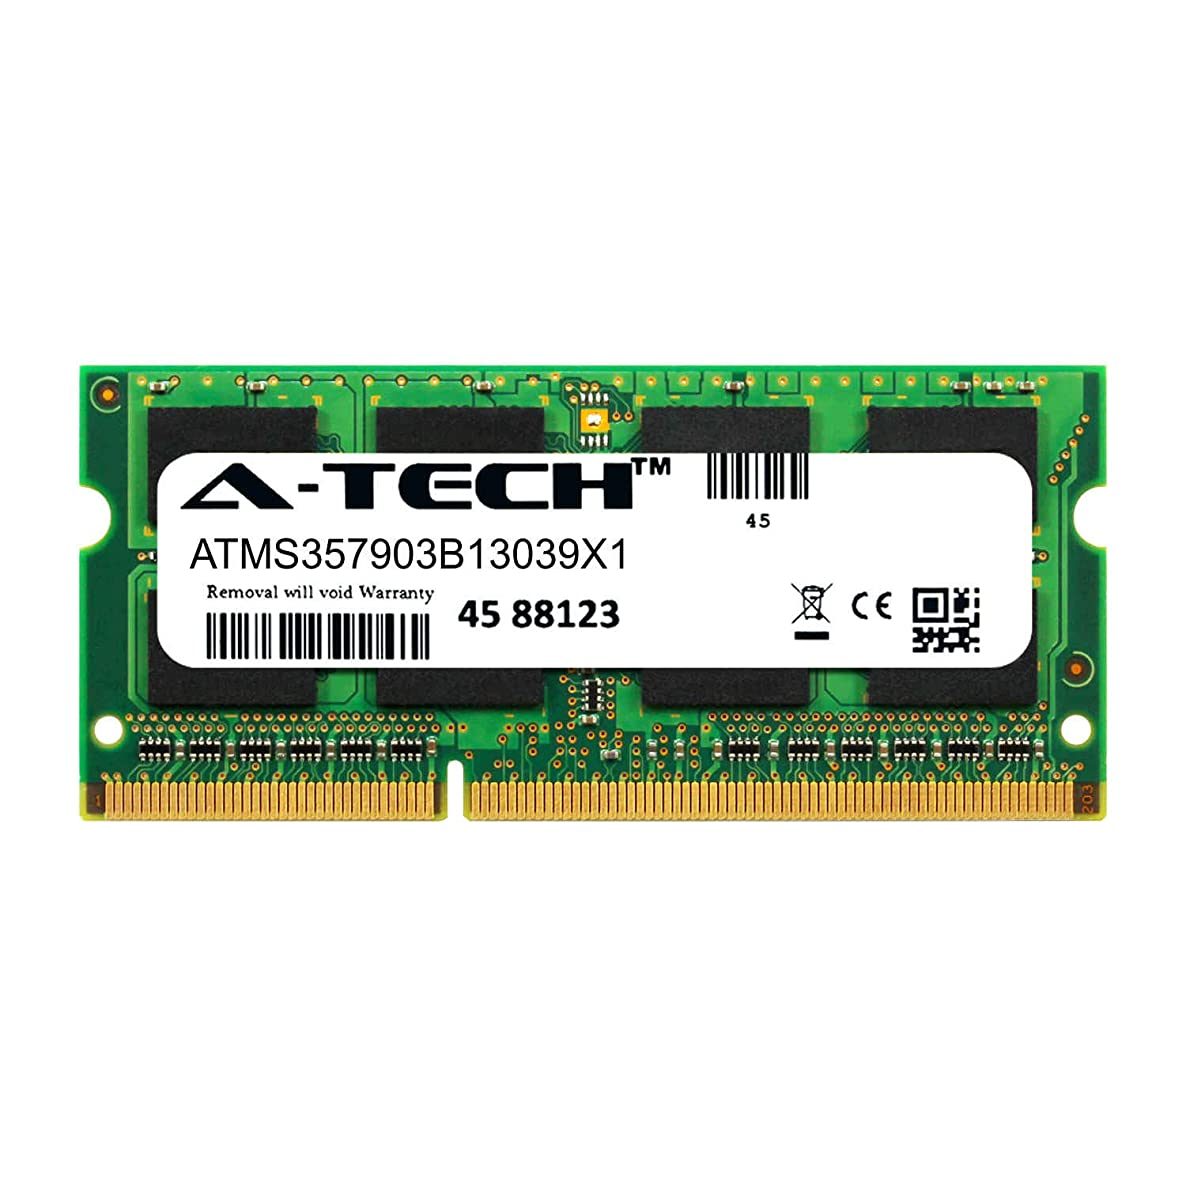 A-Tech 4GB Module for Sony VAIO VPCEG37FM All-in-One (AIO) Compatible DDR3/DDR3L PC3-14900 1866Mhz Memory Ram (ATMS357903B13039X1)